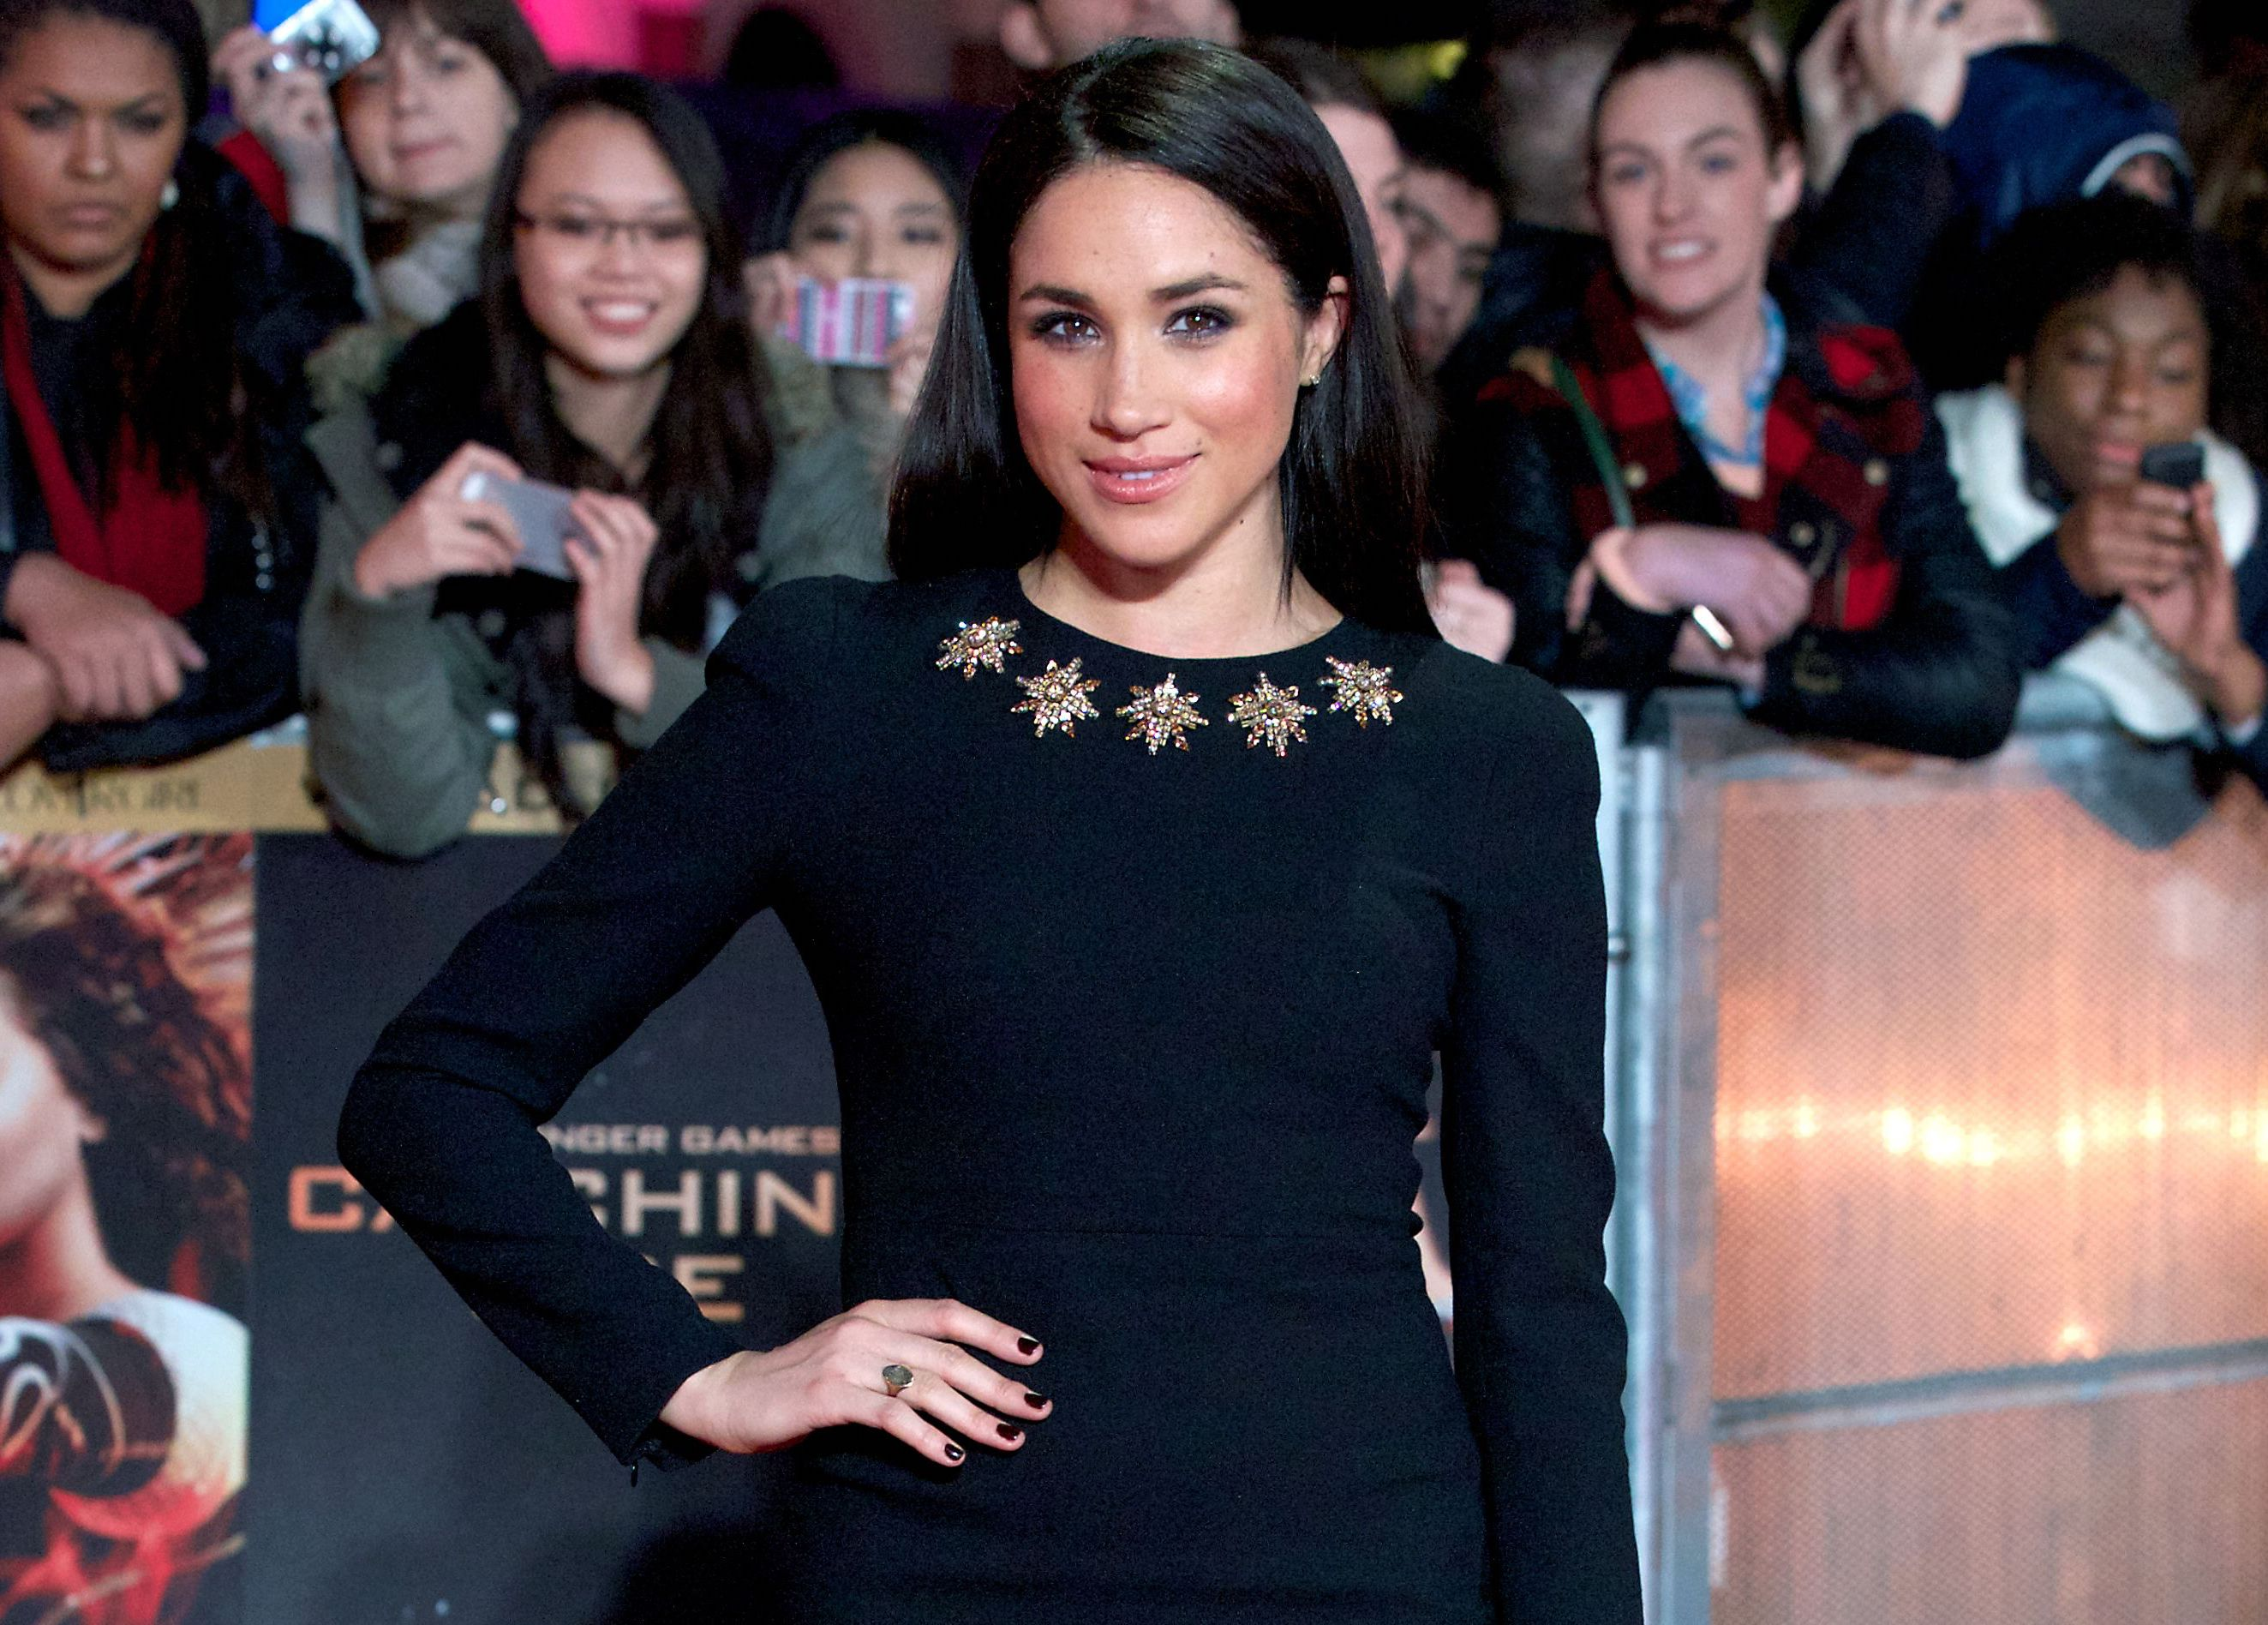 """Meghan Markle at the premier of """"The Hunger Games: Catching Fire"""""""